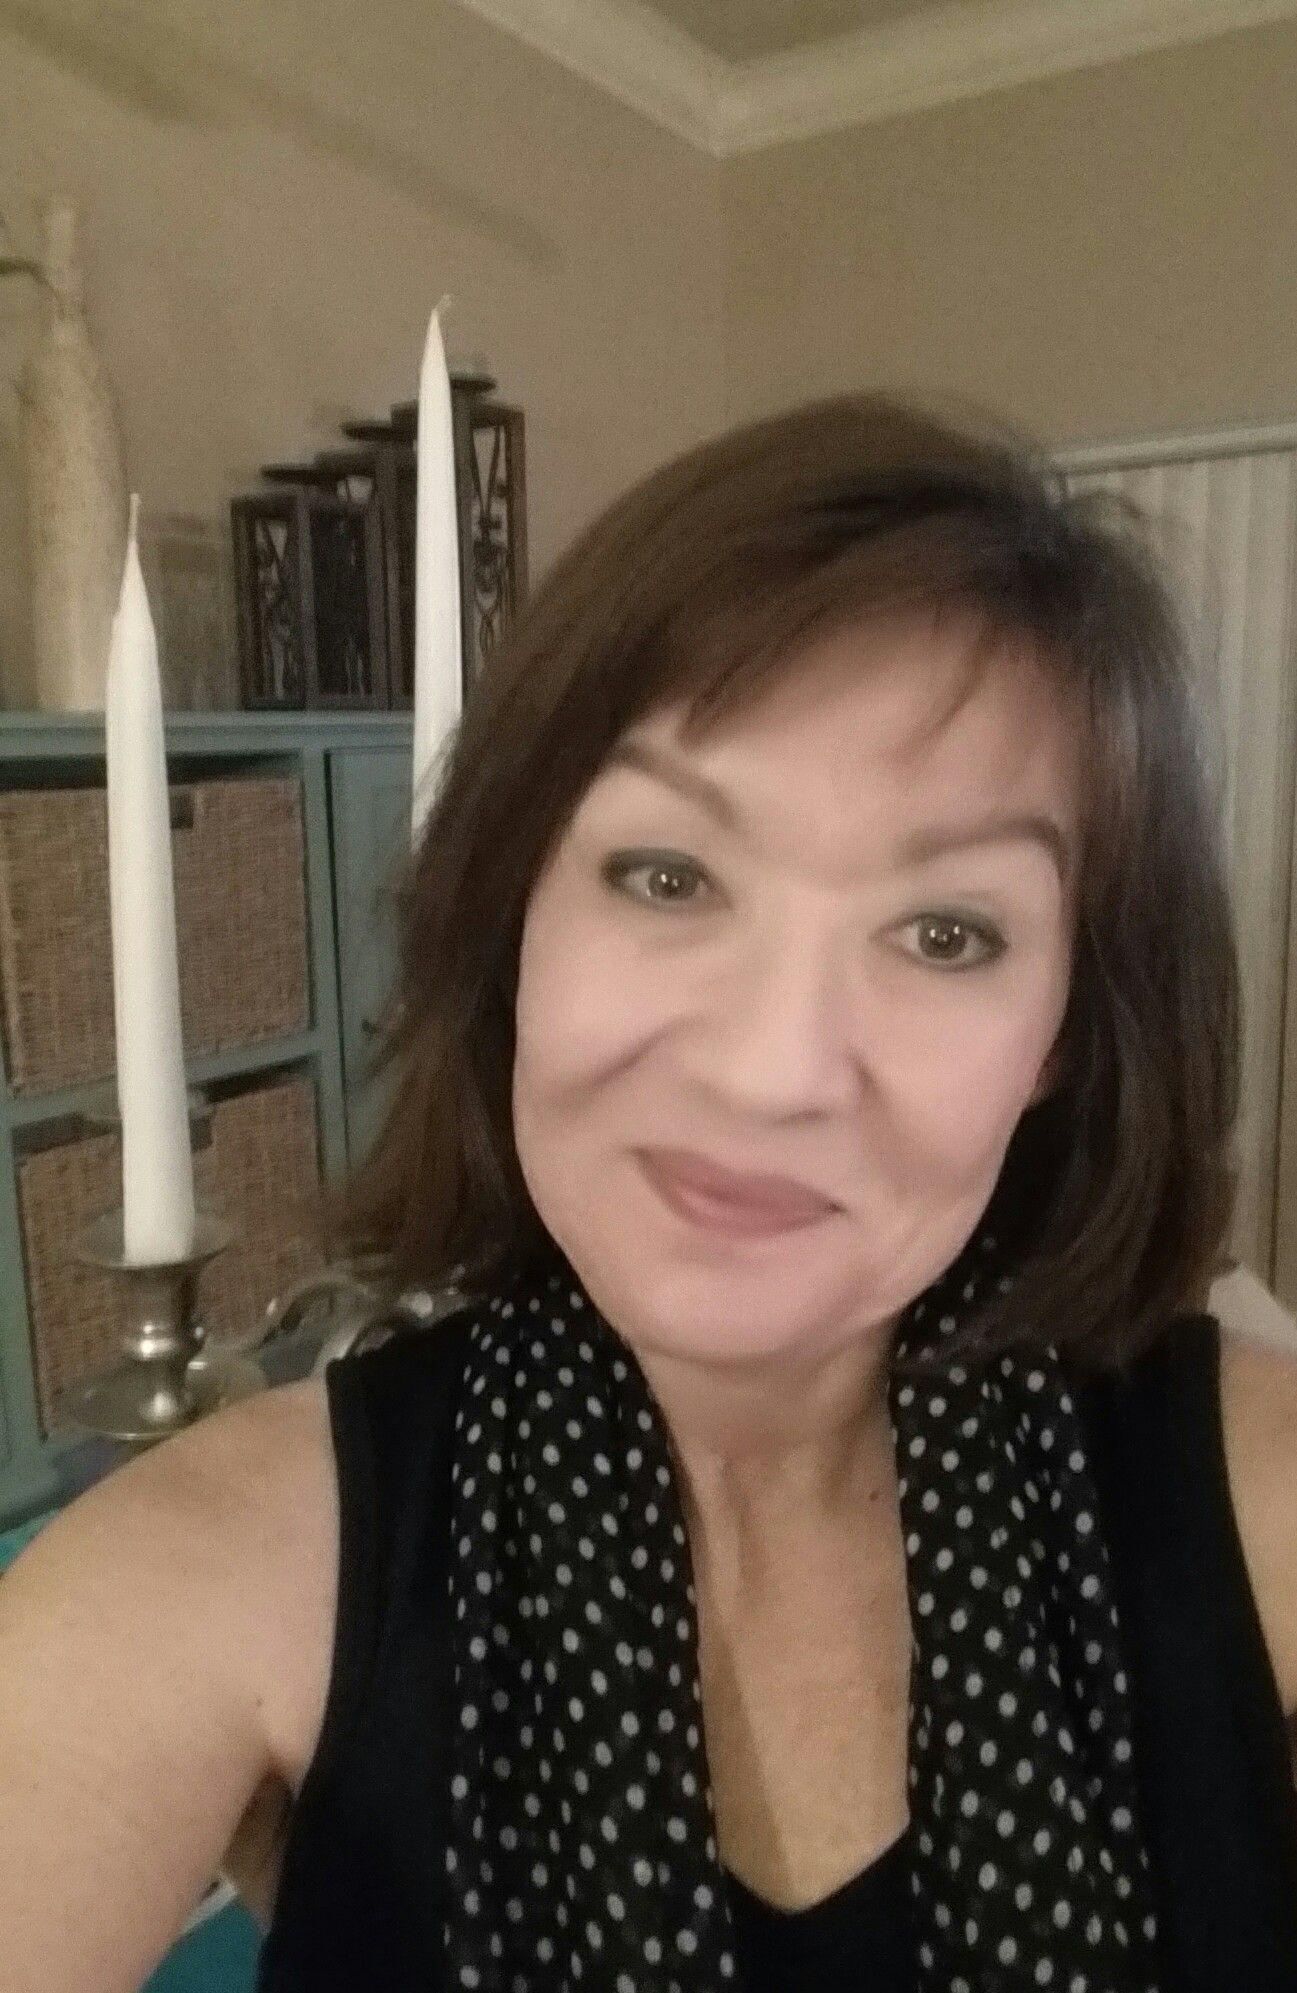 singles in sacramento Meet senior singles in sacramento, california online & connect in the chat rooms dhu is a 100% free dating site for senior dating in sacramento.